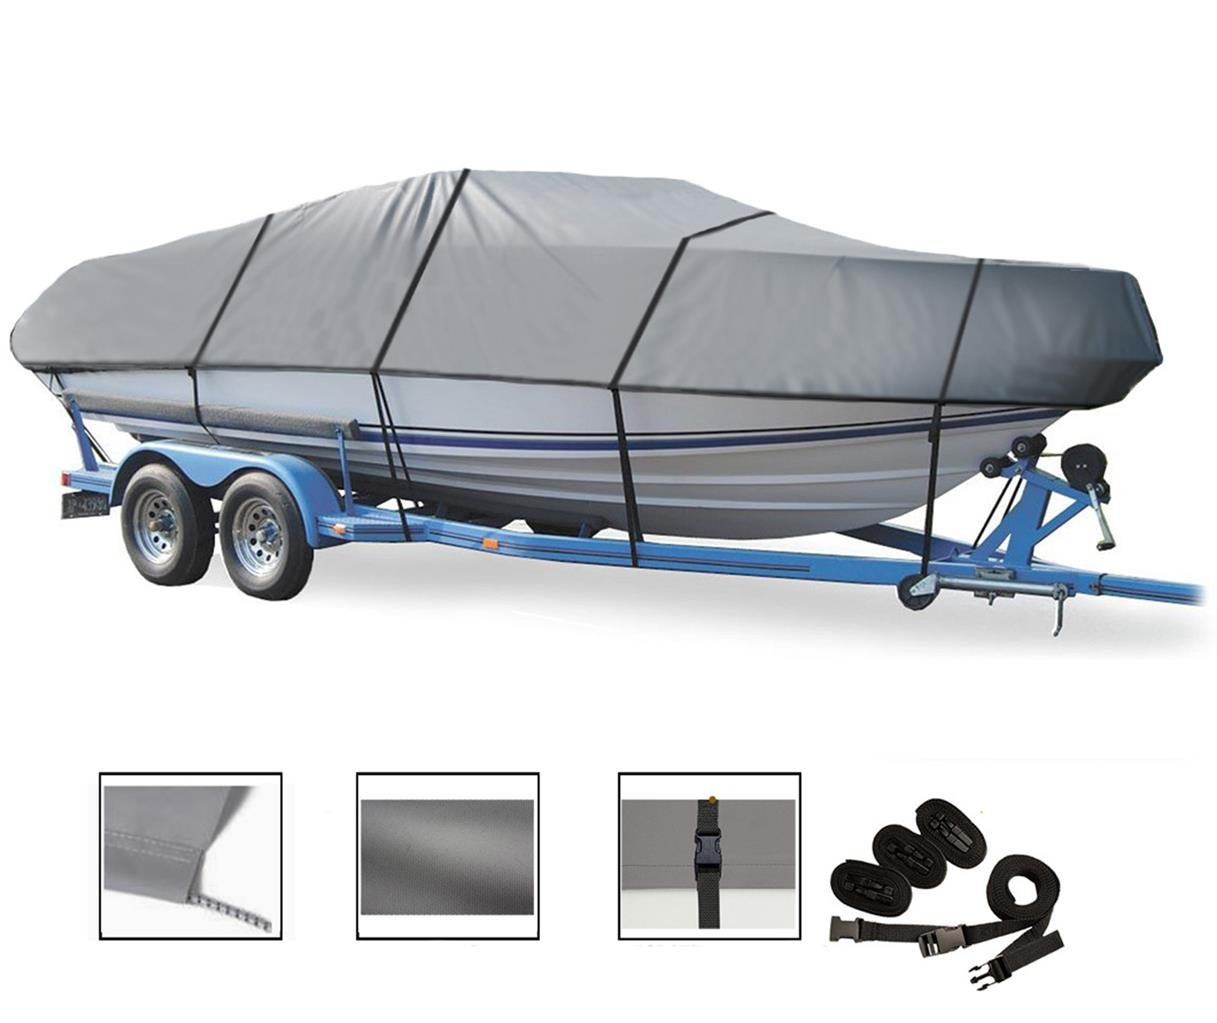 GREAT QUALITY BOAT COVER FITS BAYLINER CAPRI 1952 CN CUDDY 1999 00 01 02 by SBU